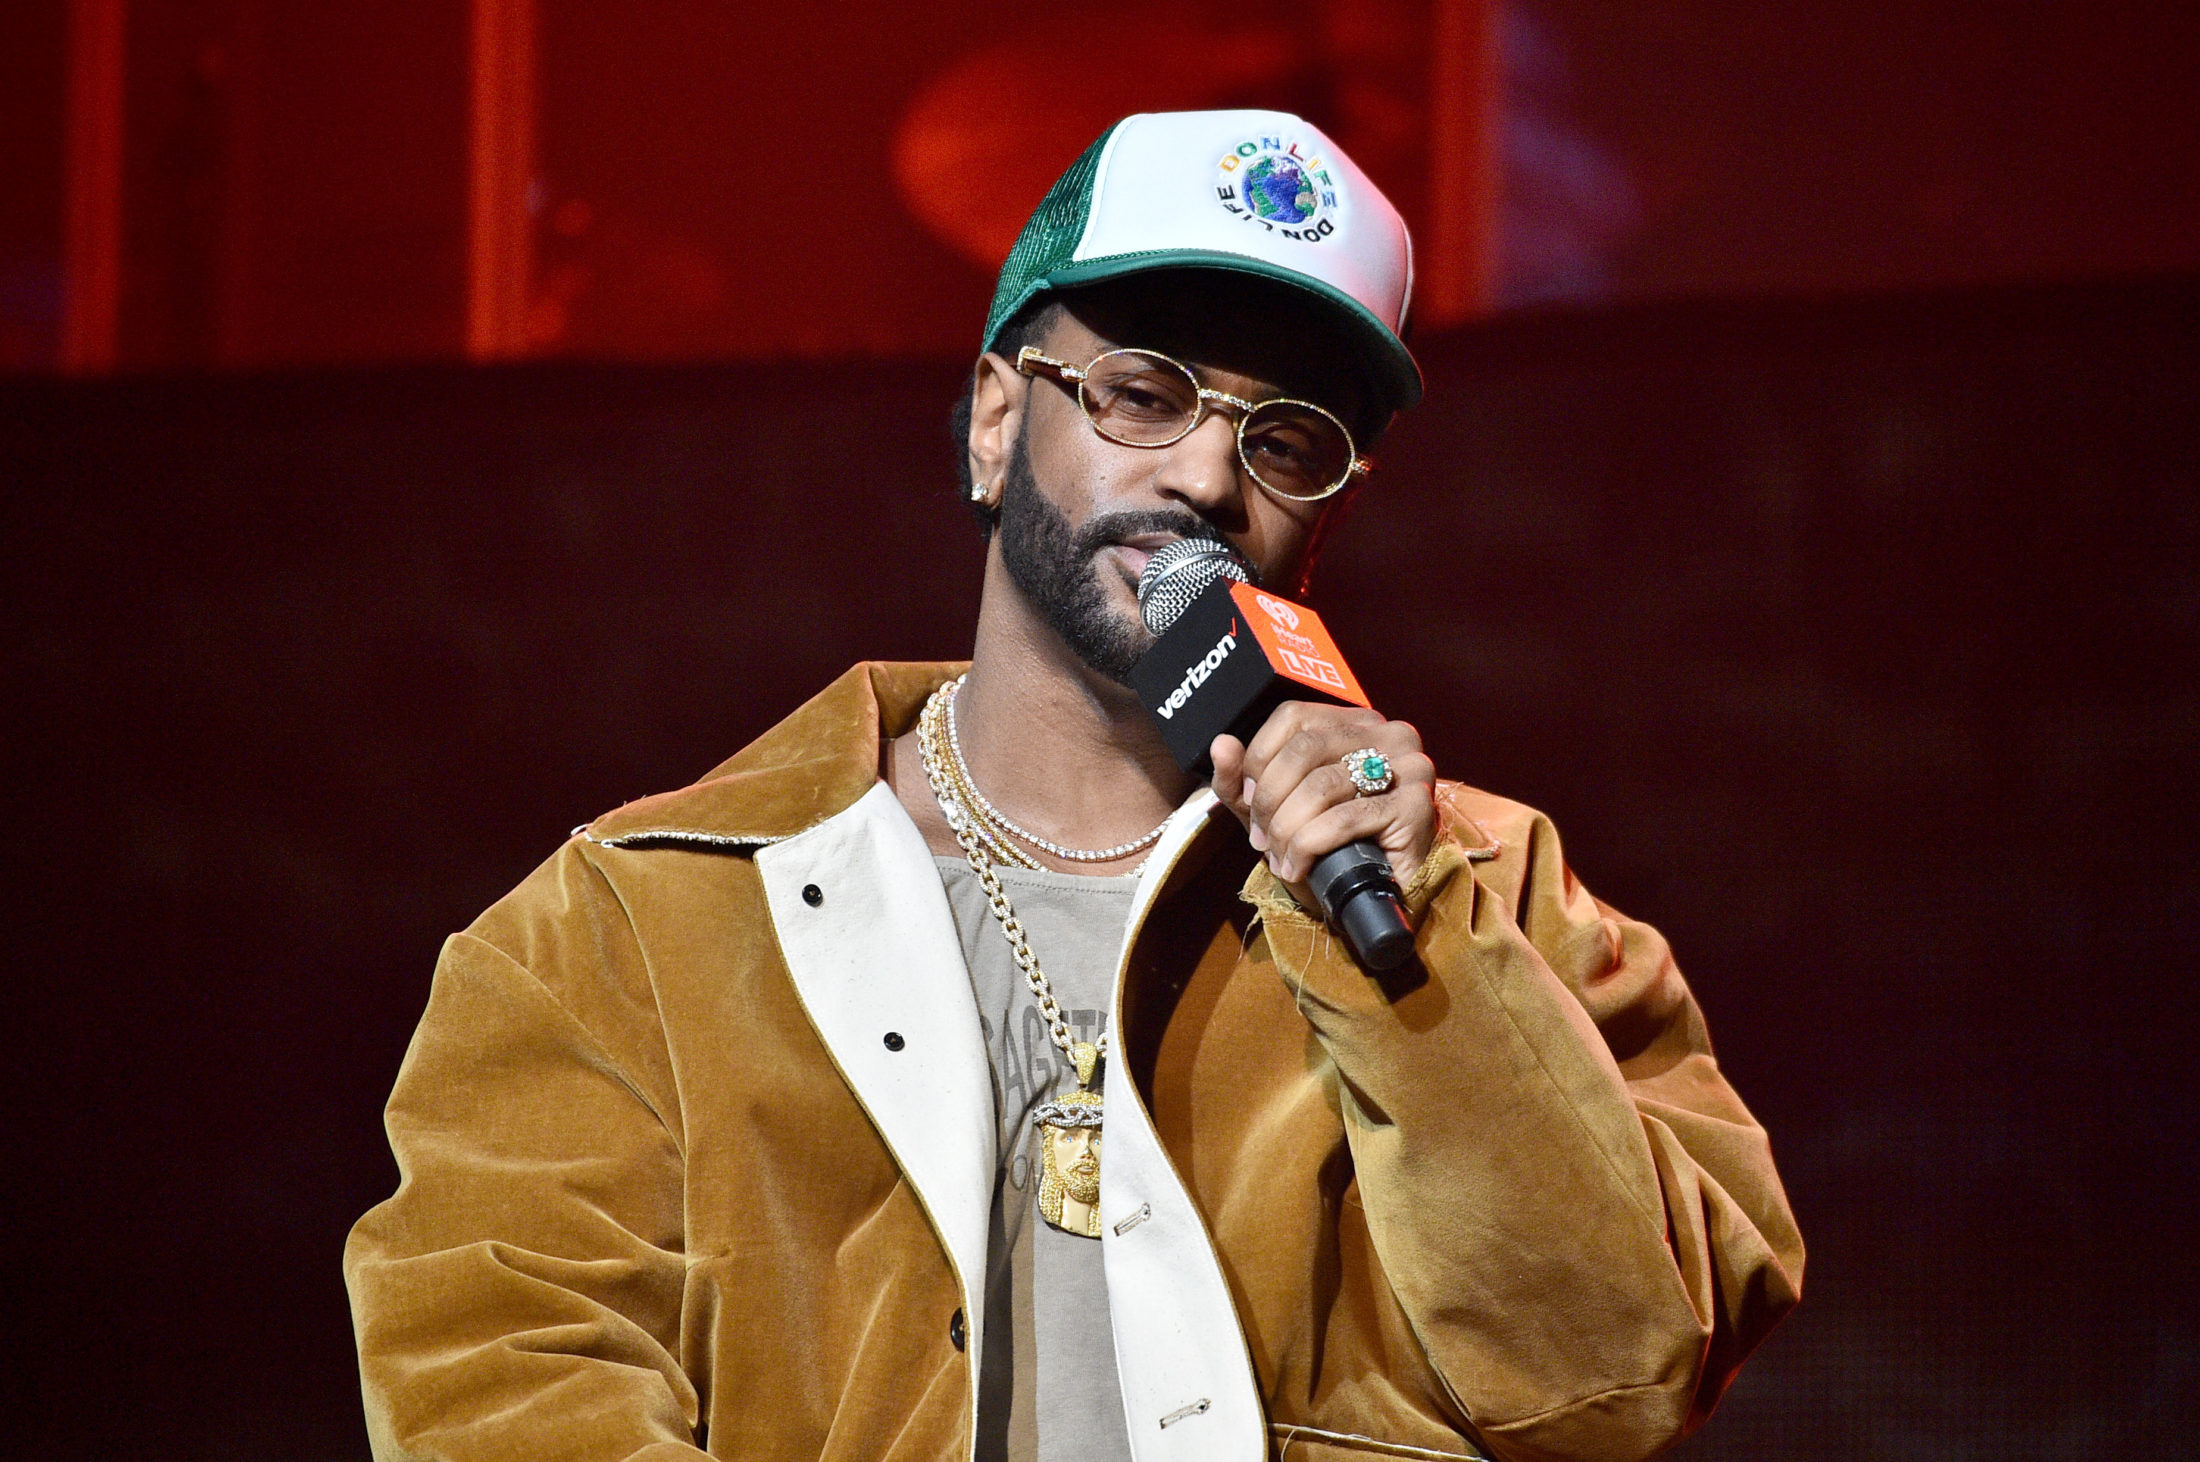 Big Sean's 'Detroit 2' Debuts at No. 1 on Billboard 200 Albums Chart - Billboard